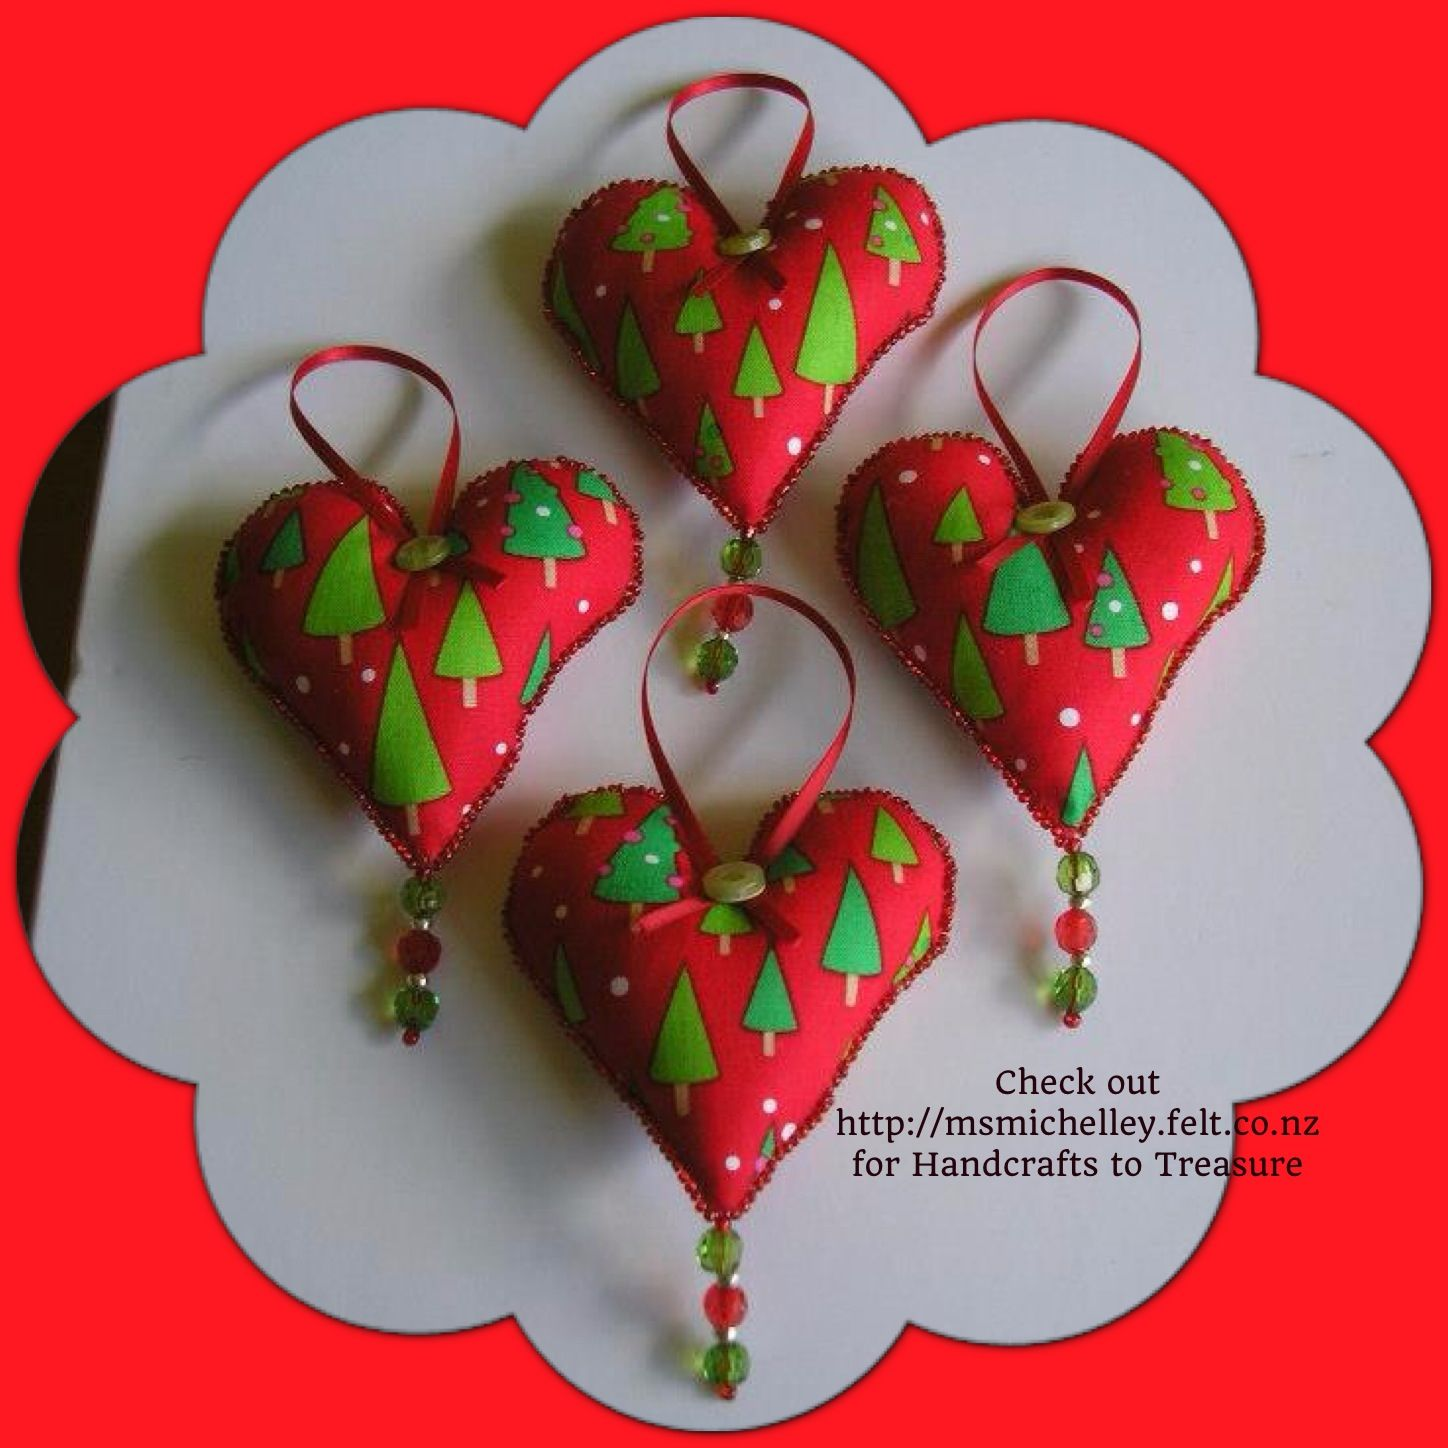 Check Out Msmichelley For Handcrafts To Treasure Crafts Christmas Decorations Http Msmichelley Felt Co Nz Christmas Diy Felt Christmas Crafts